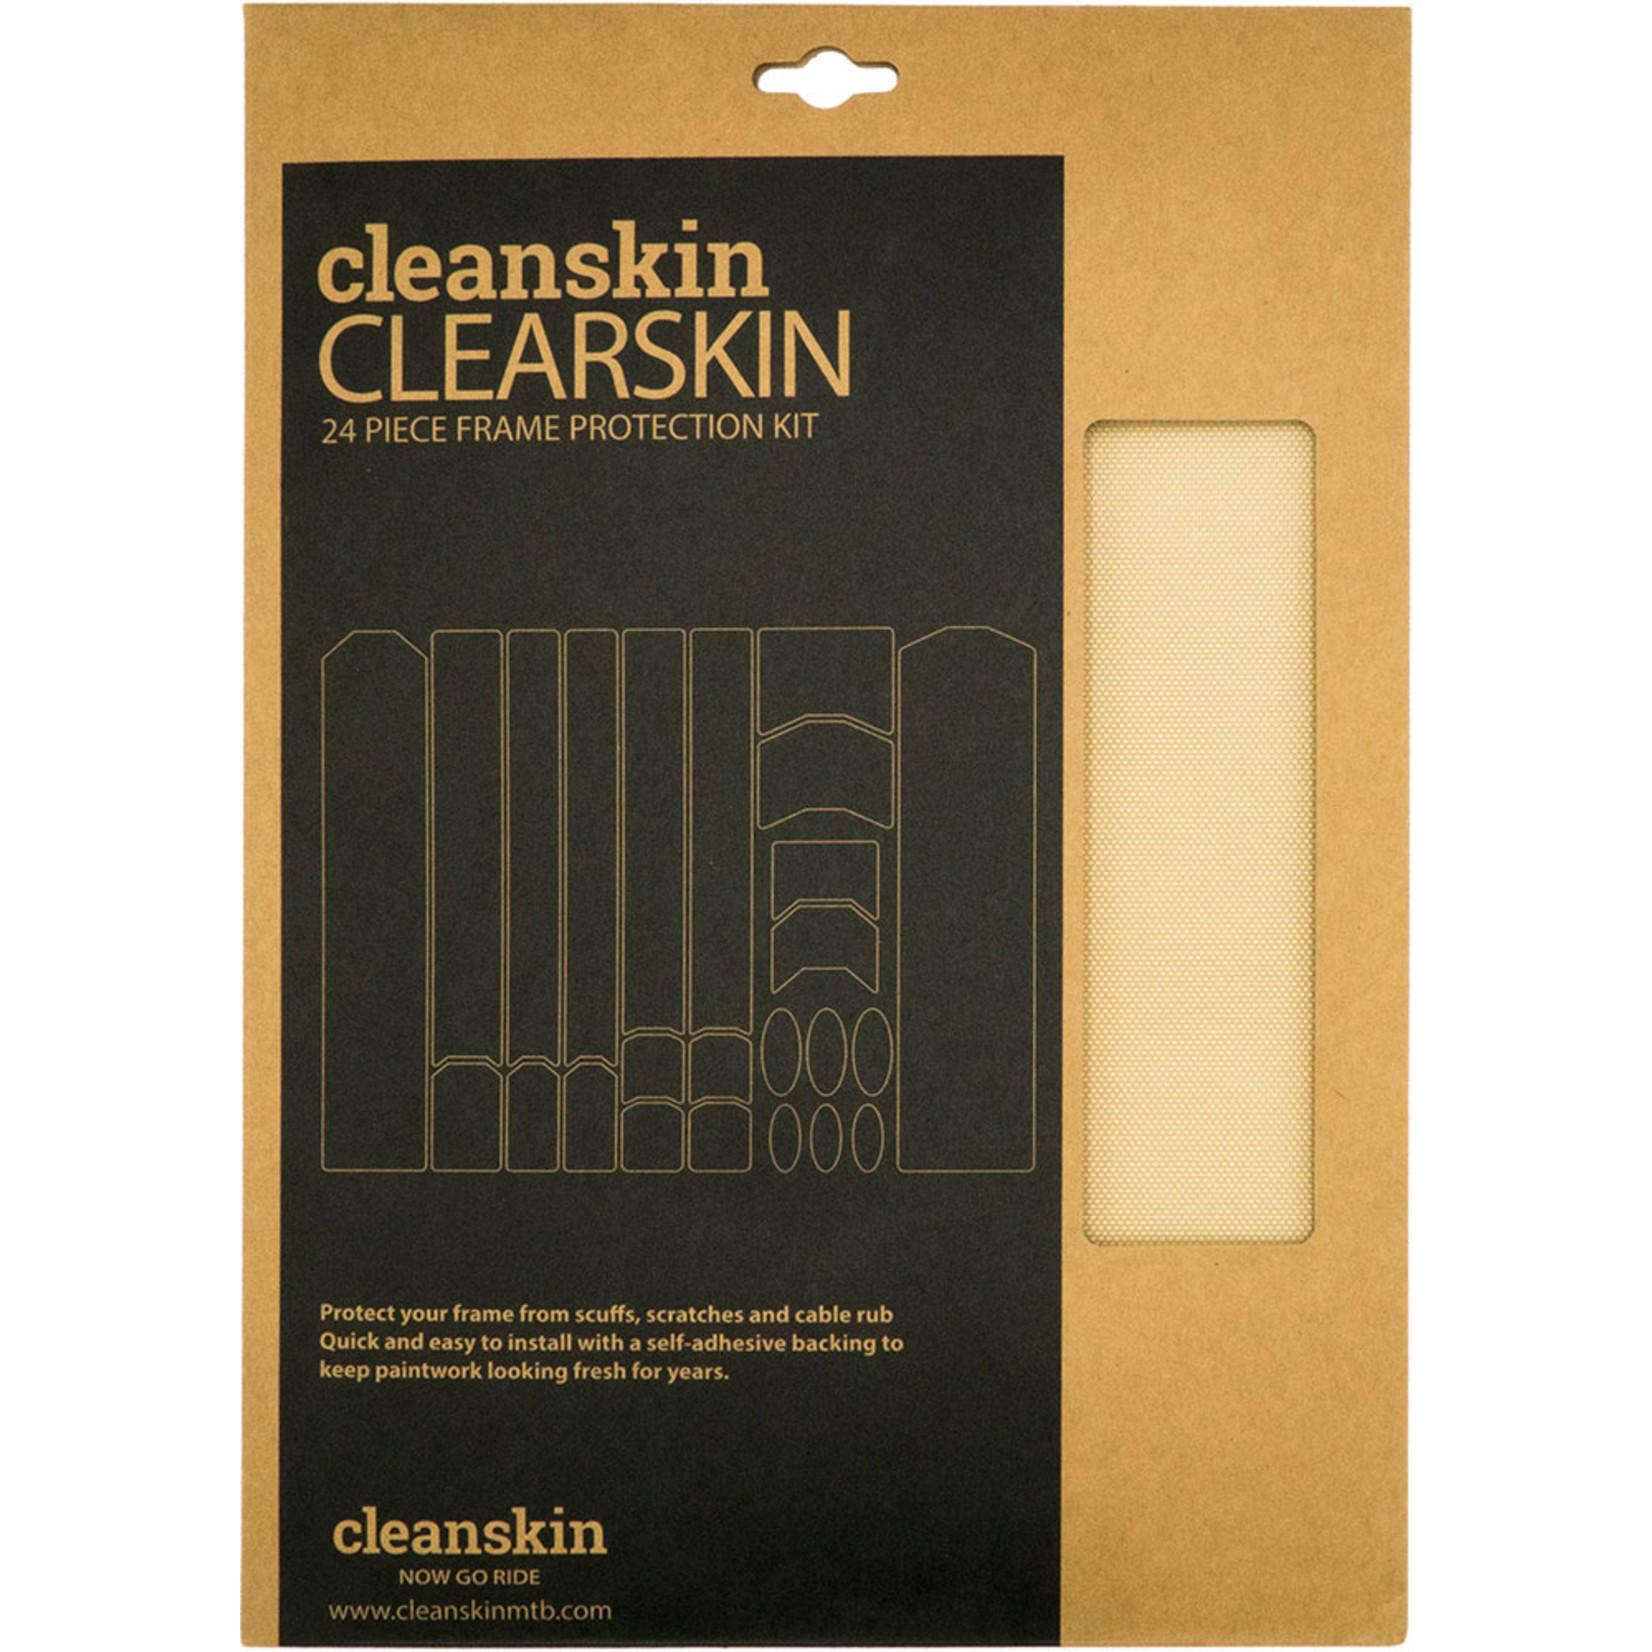 Cleanskin Cleanskin, Clearskin 24 Piece Frame Protection Kit